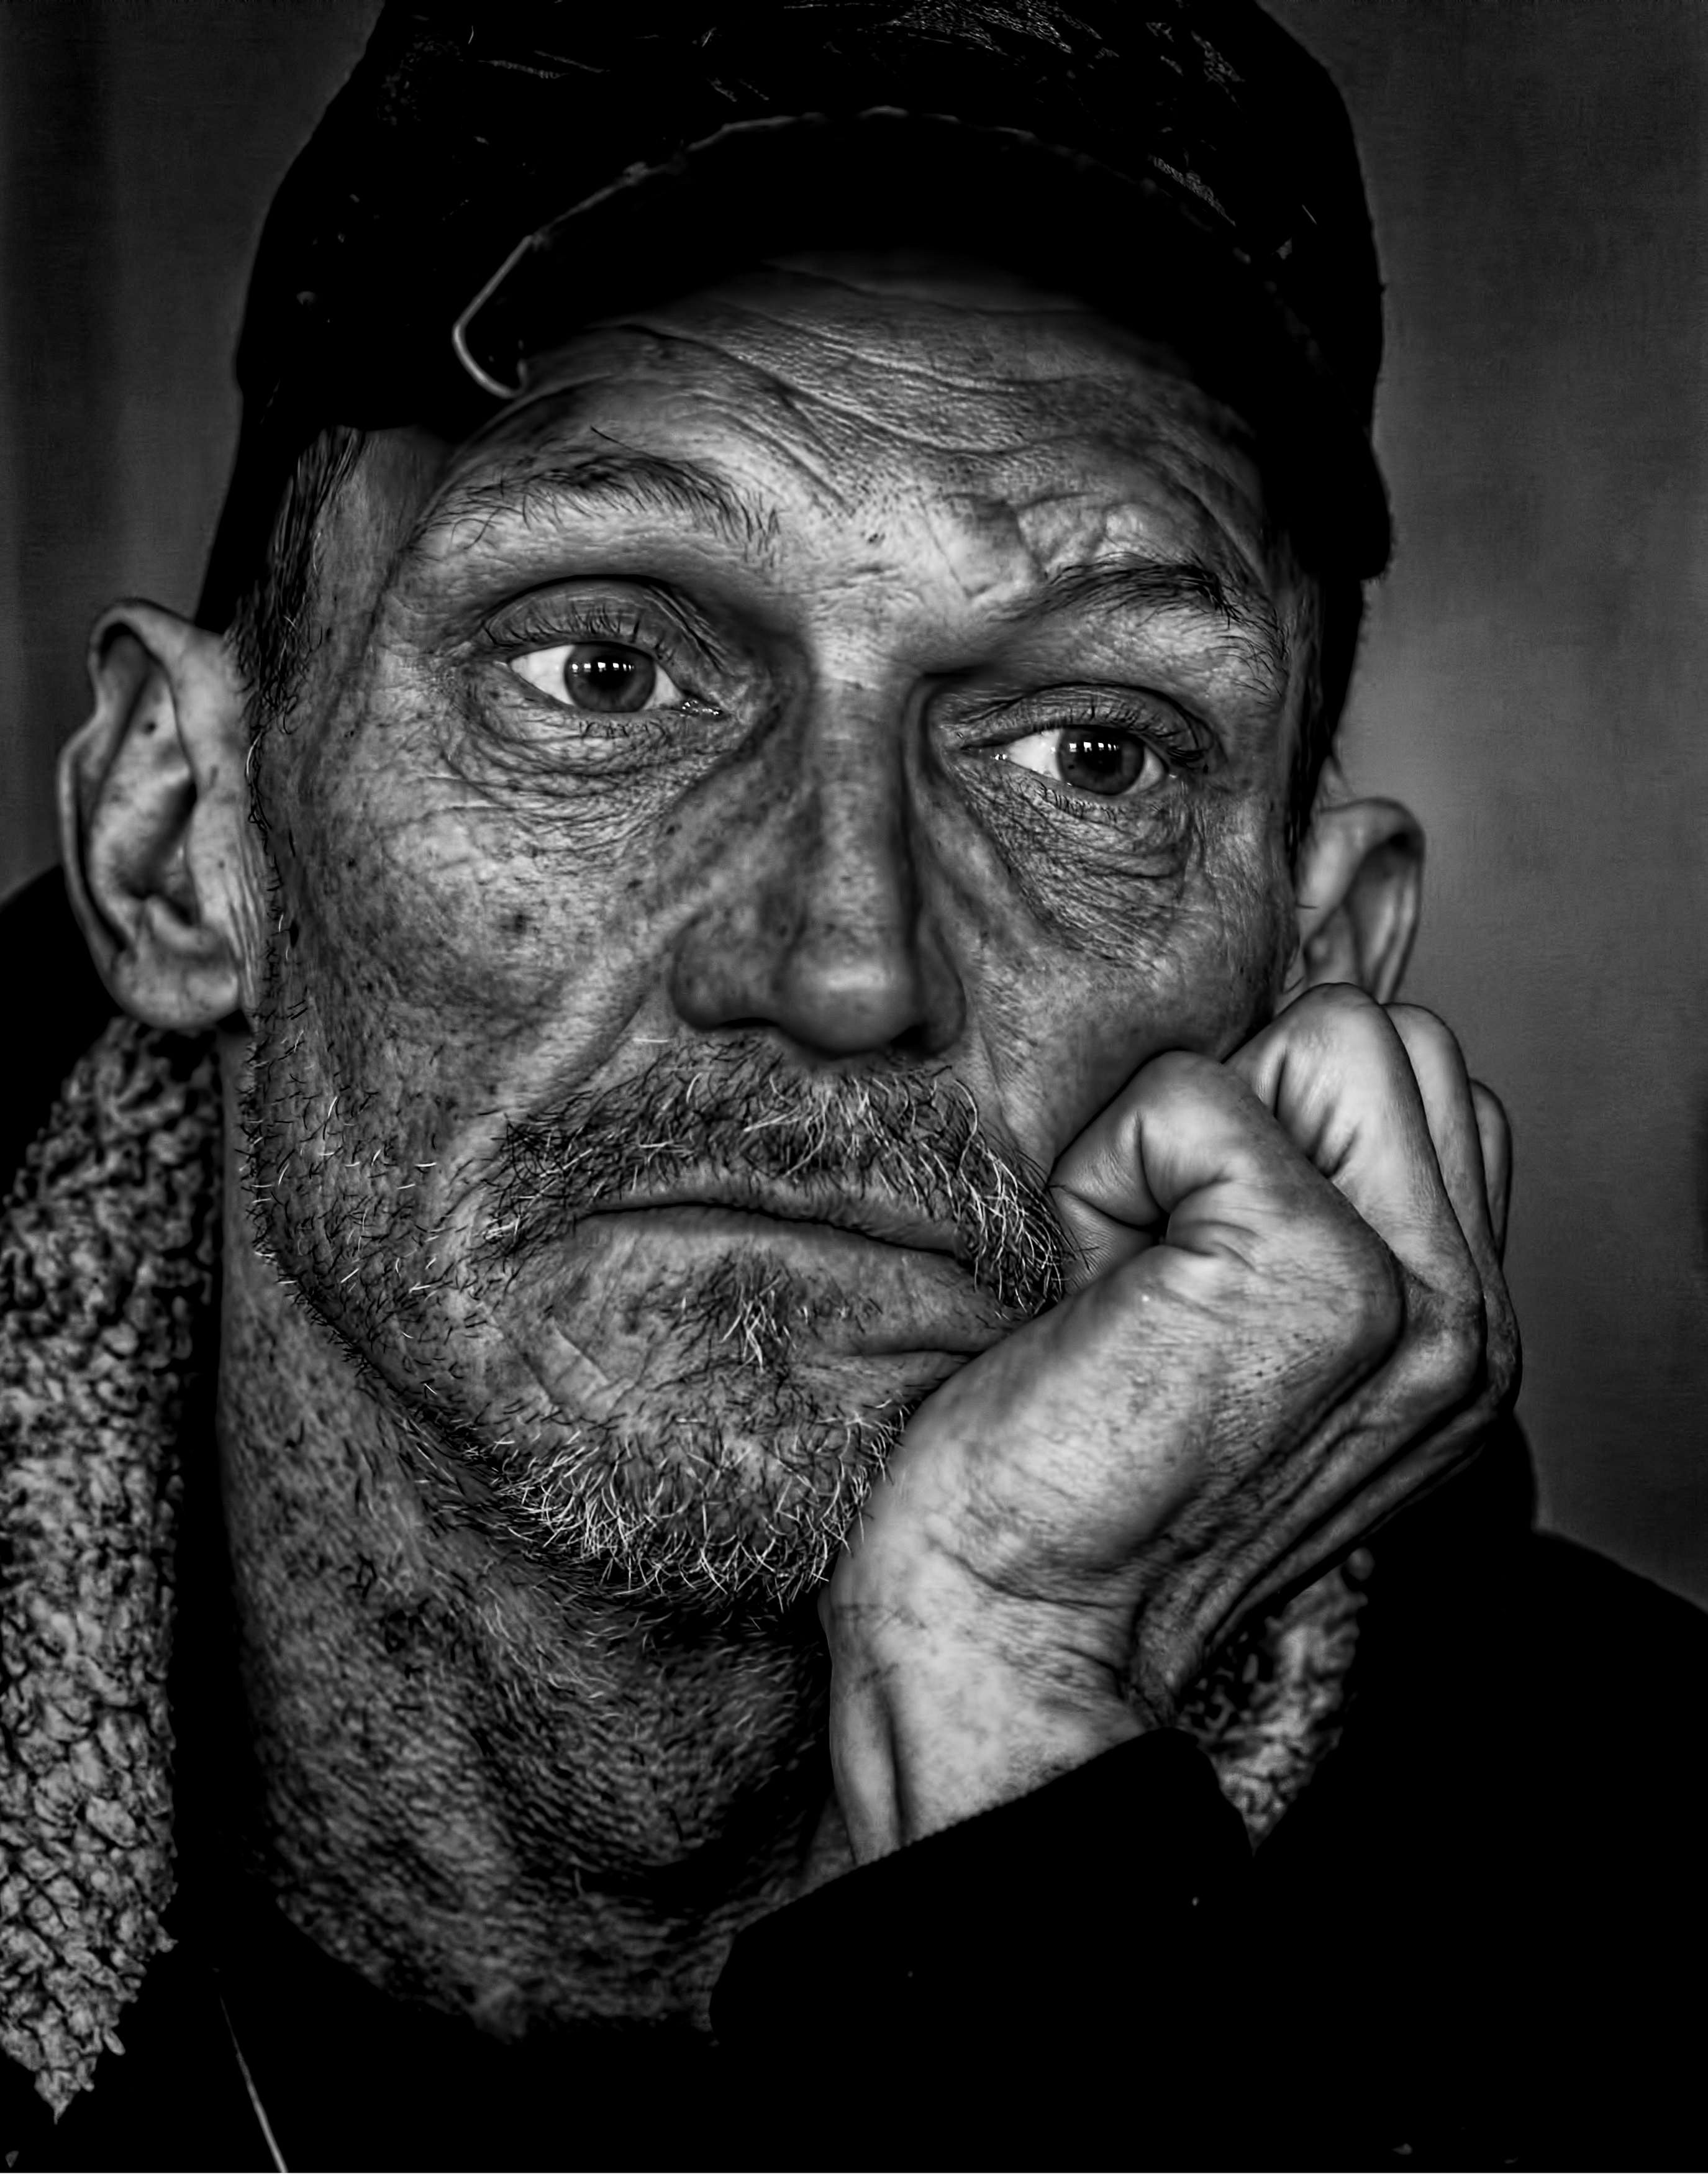 Man in Black Cap Grayscale Photo